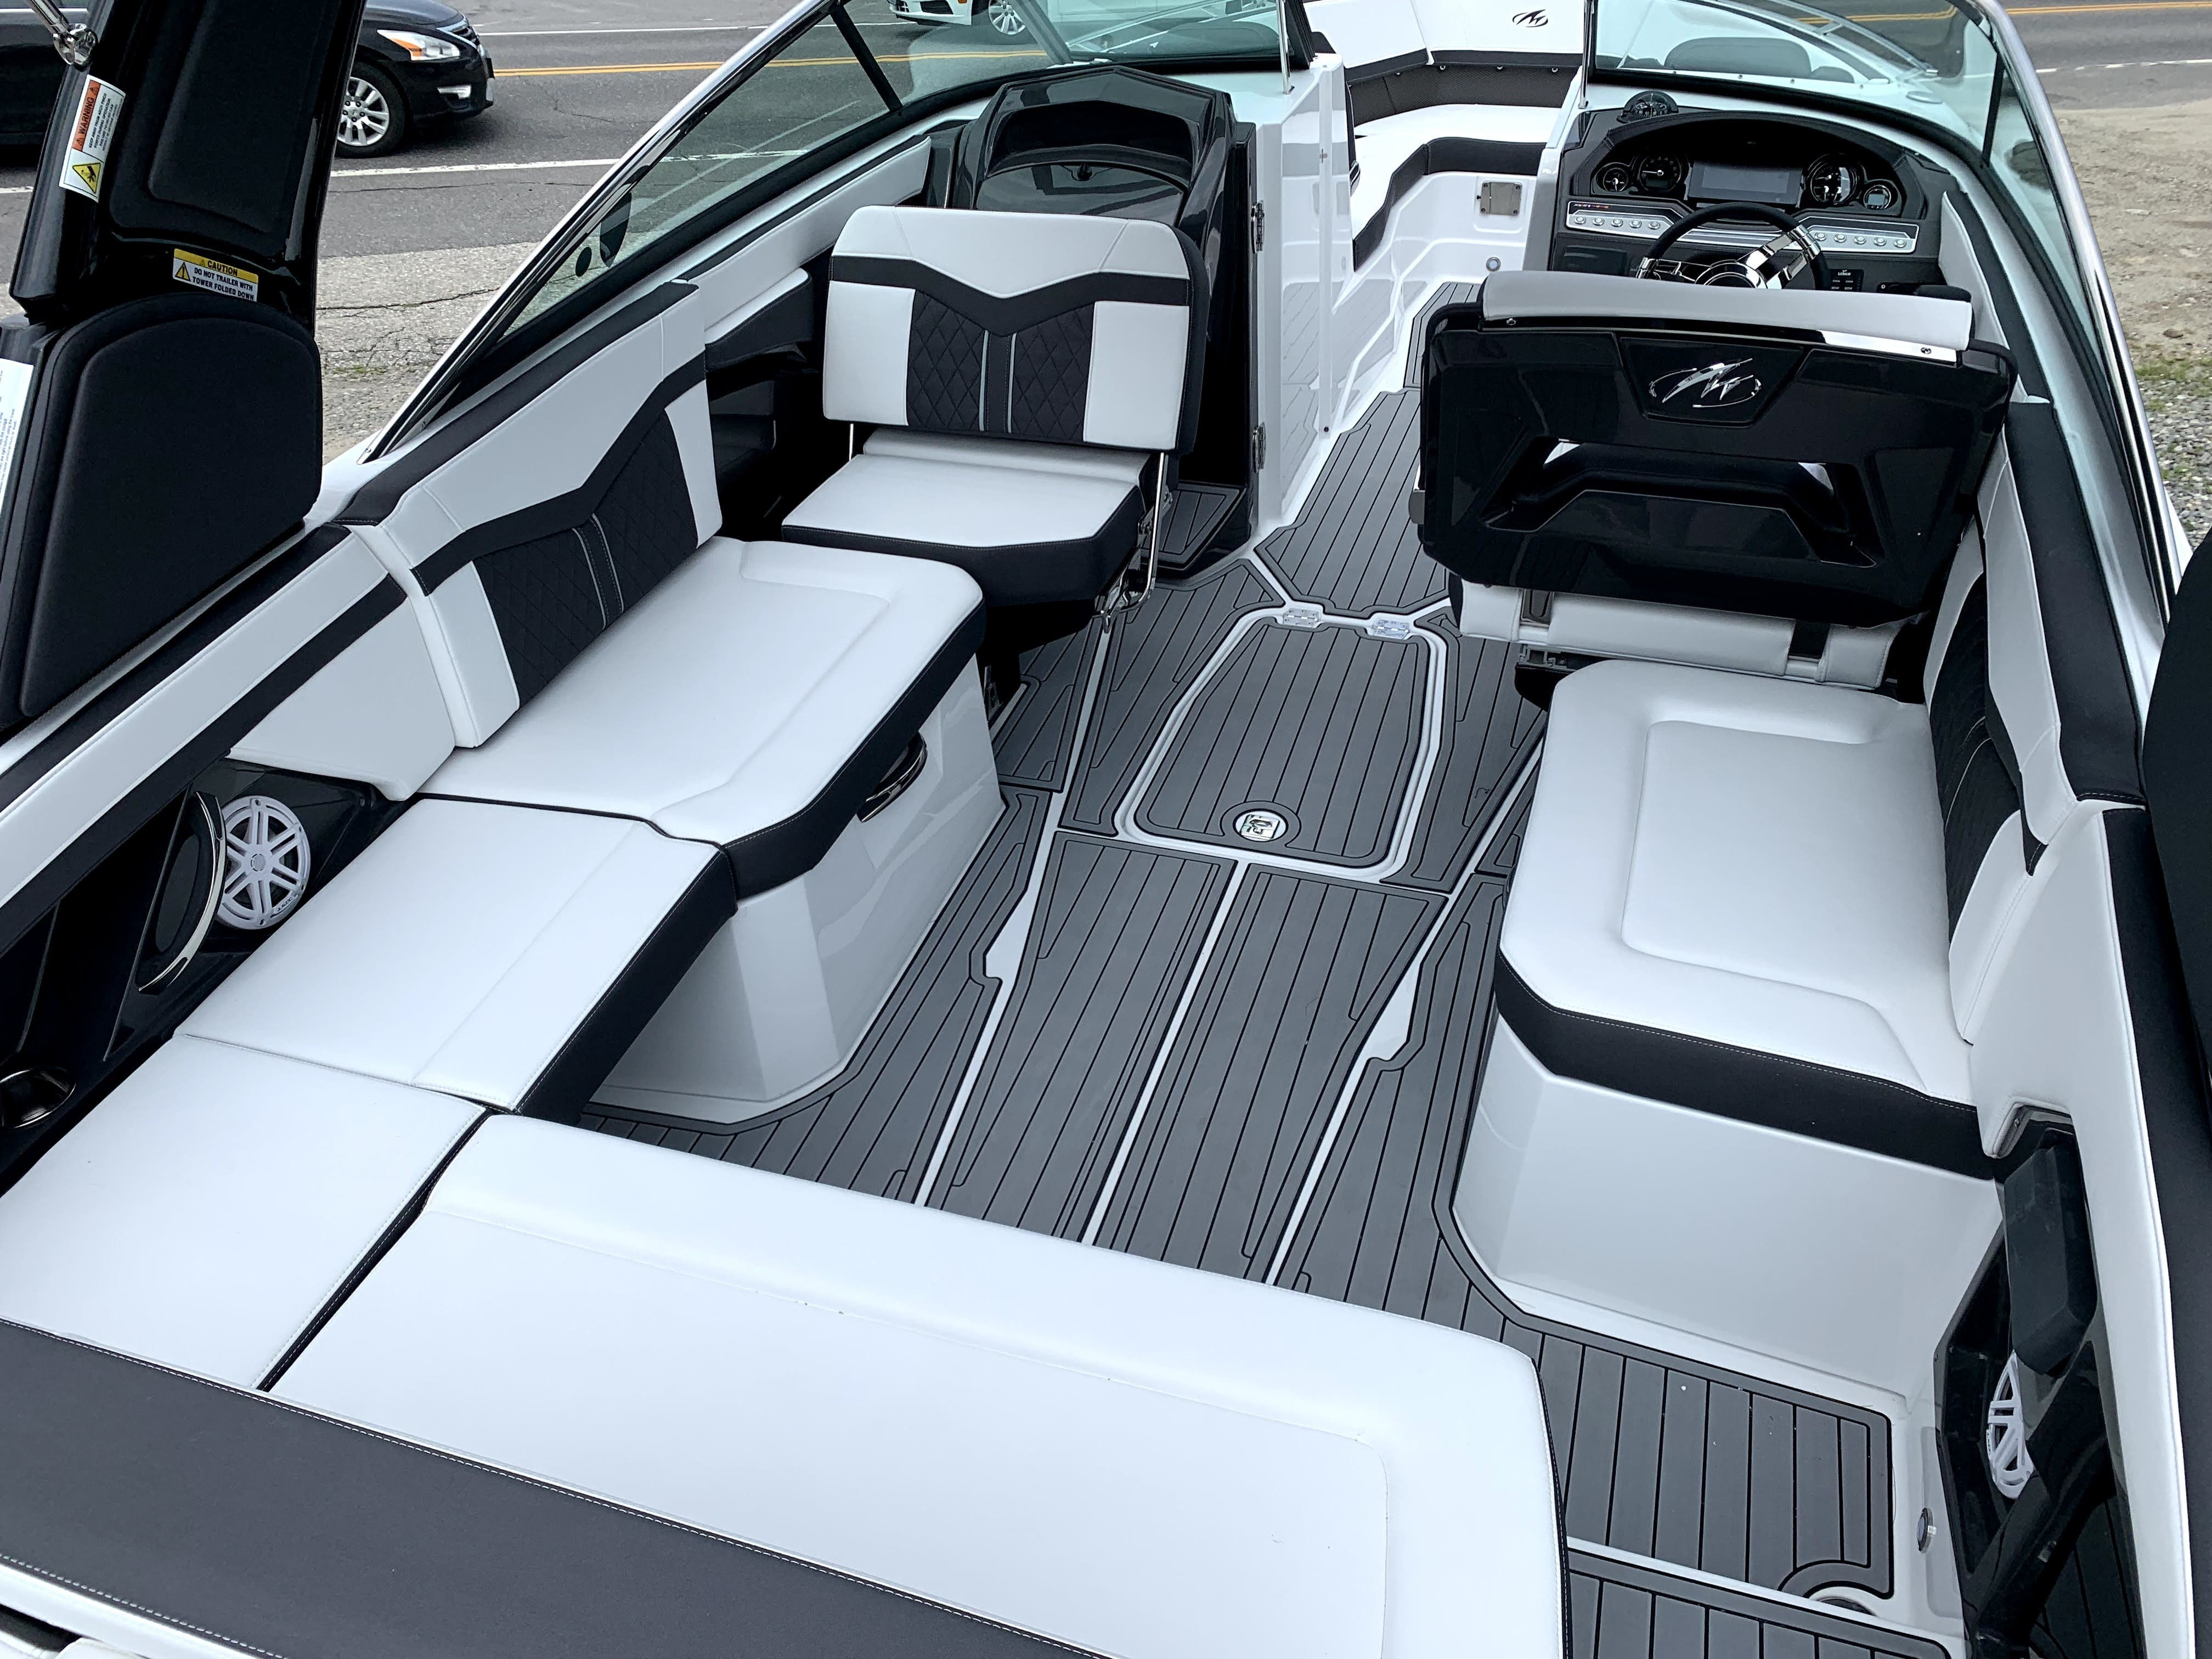 2022 Monterey boat for sale, model of the boat is 278SS & Image # 10 of 14